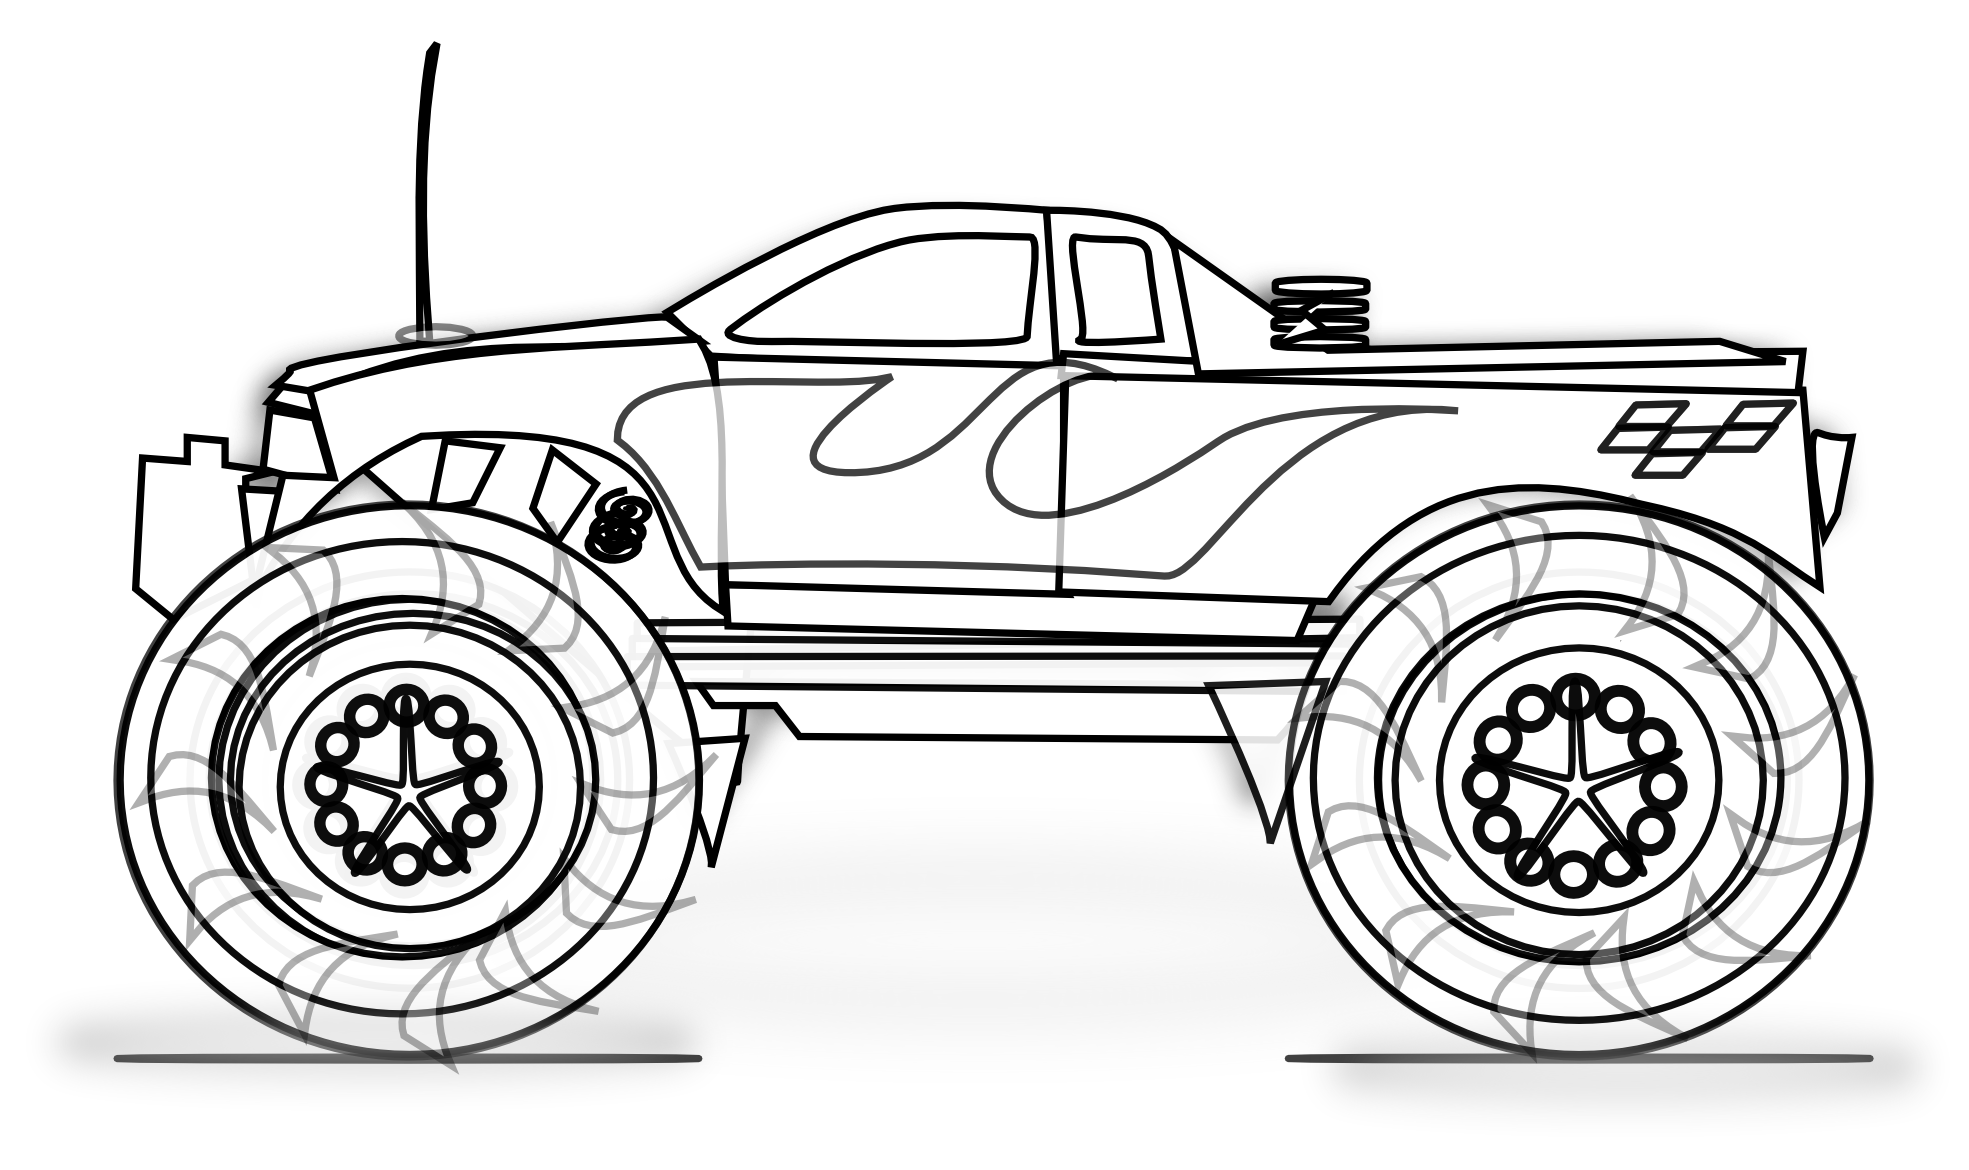 Silverado drawing monster truck. Pictures of trucks to